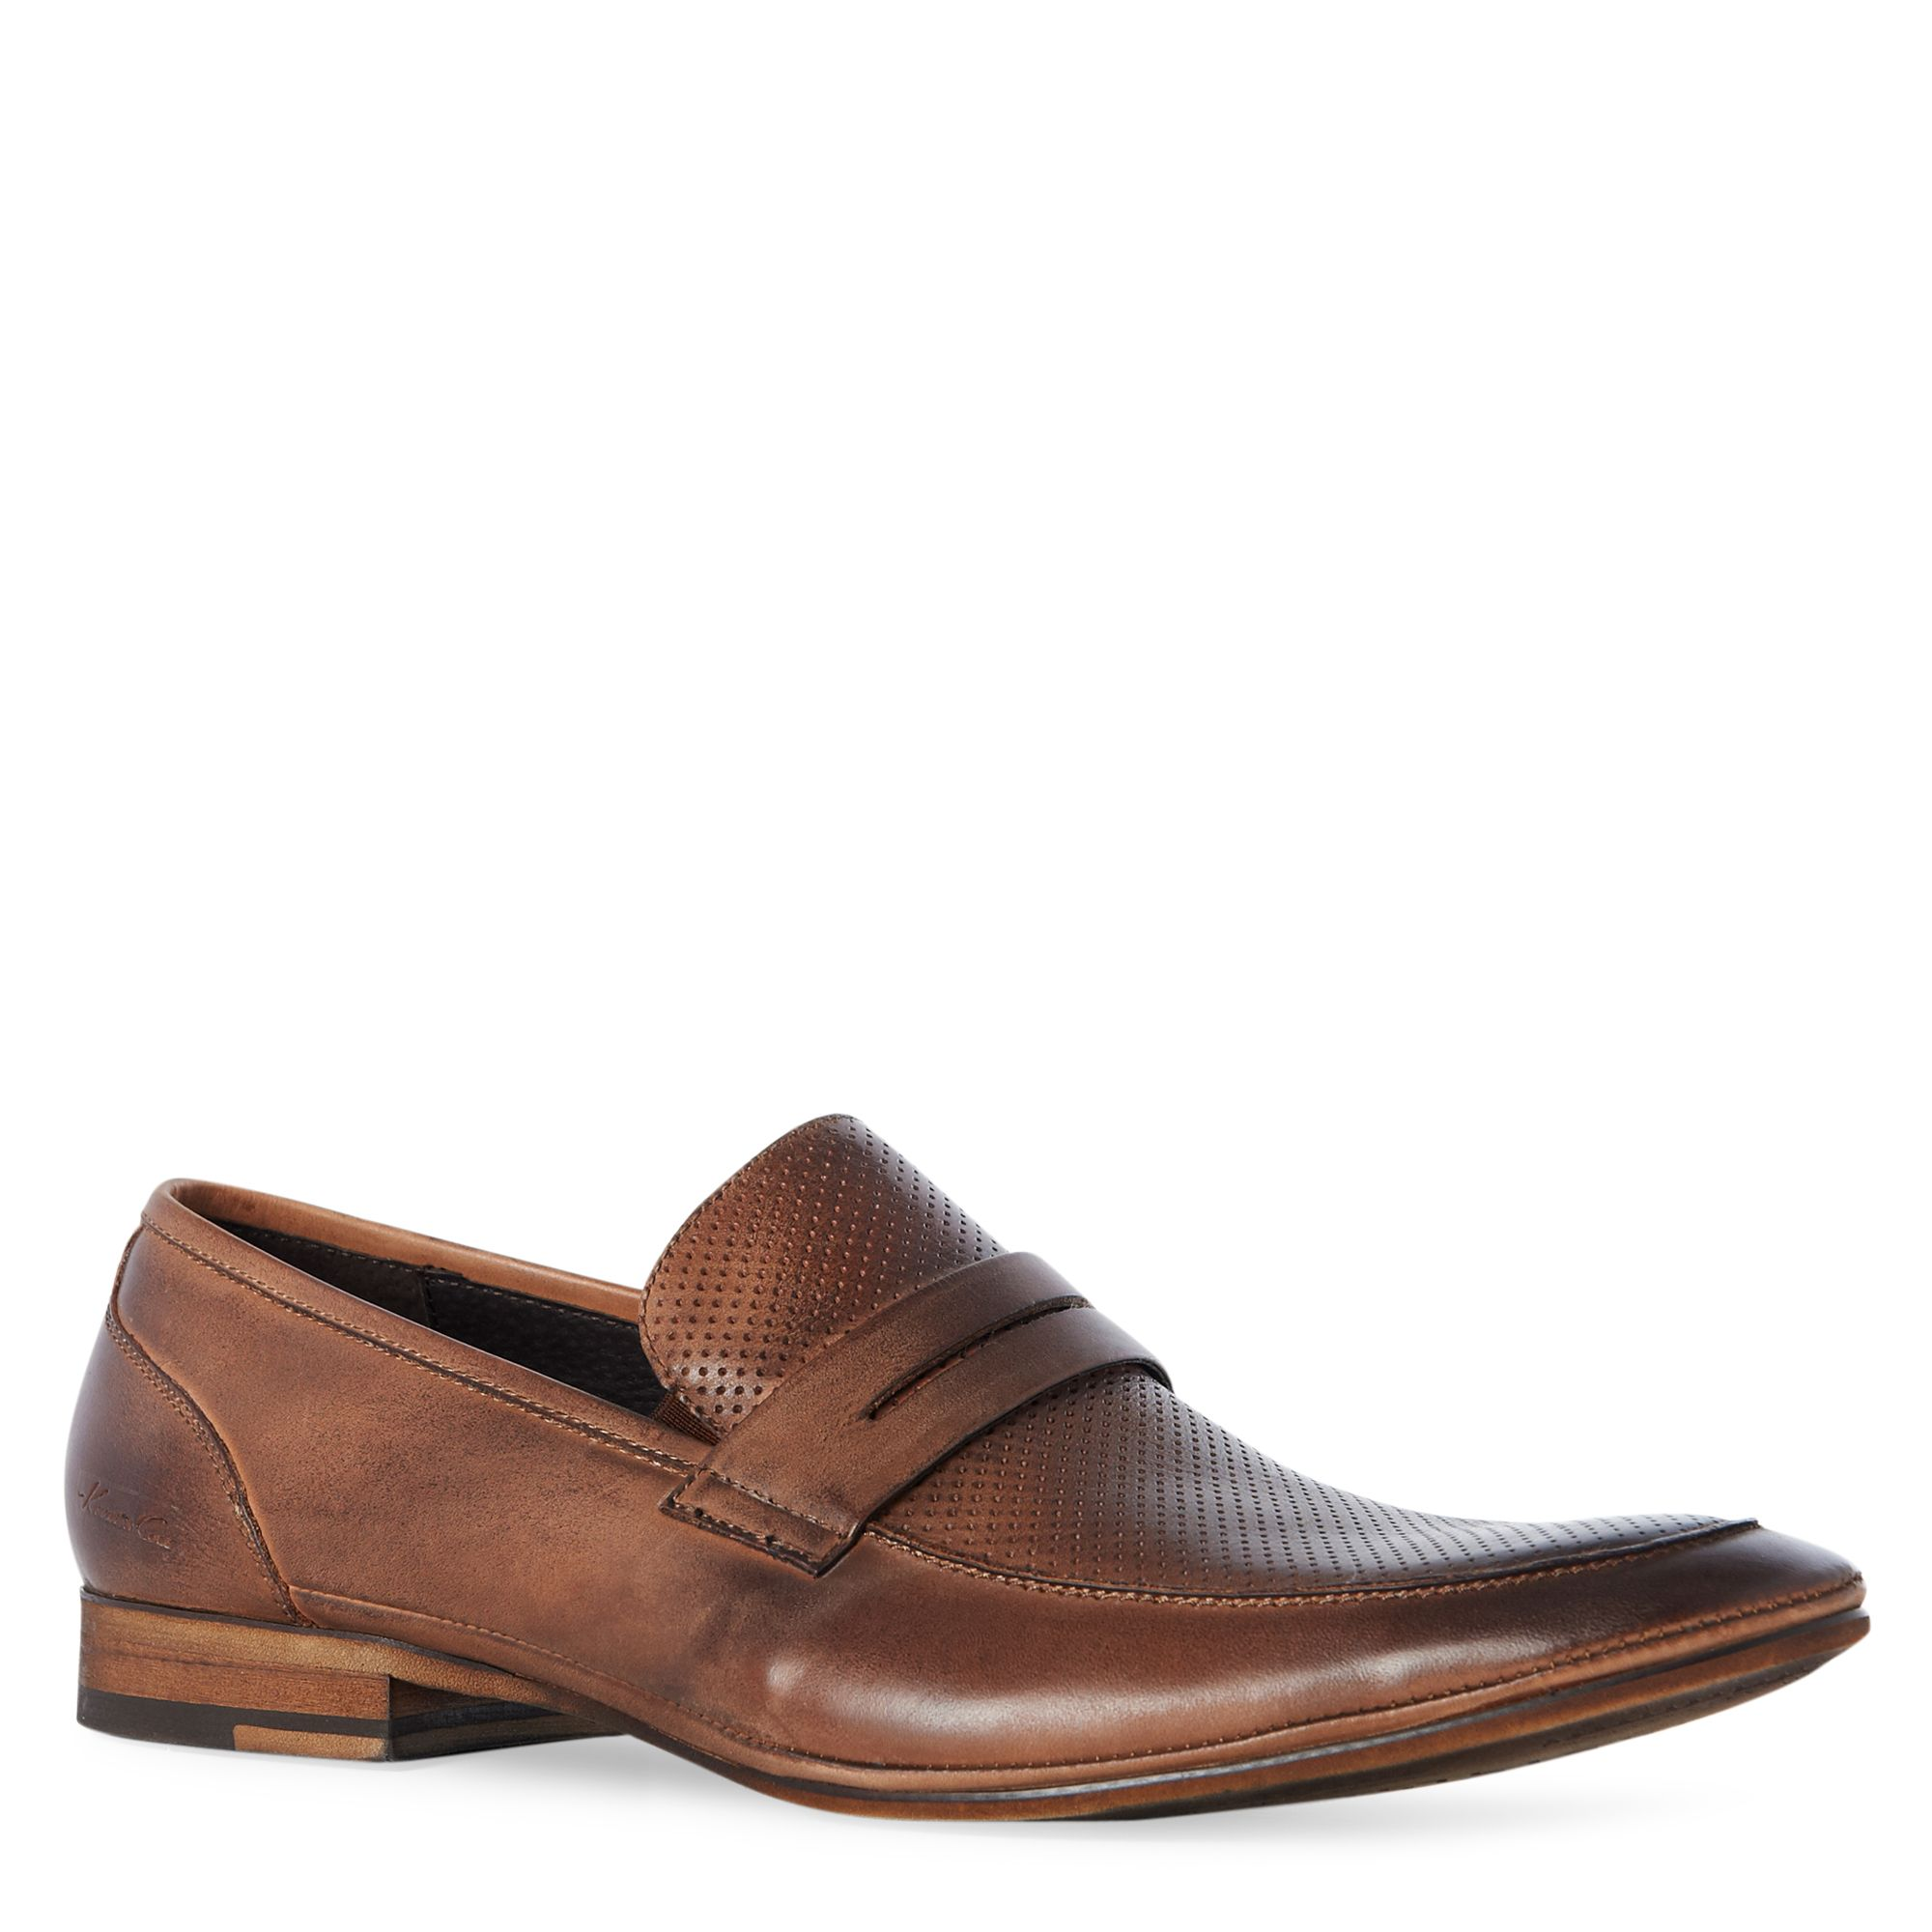 Kenneth Cole Reaction Mens Shoes Uk